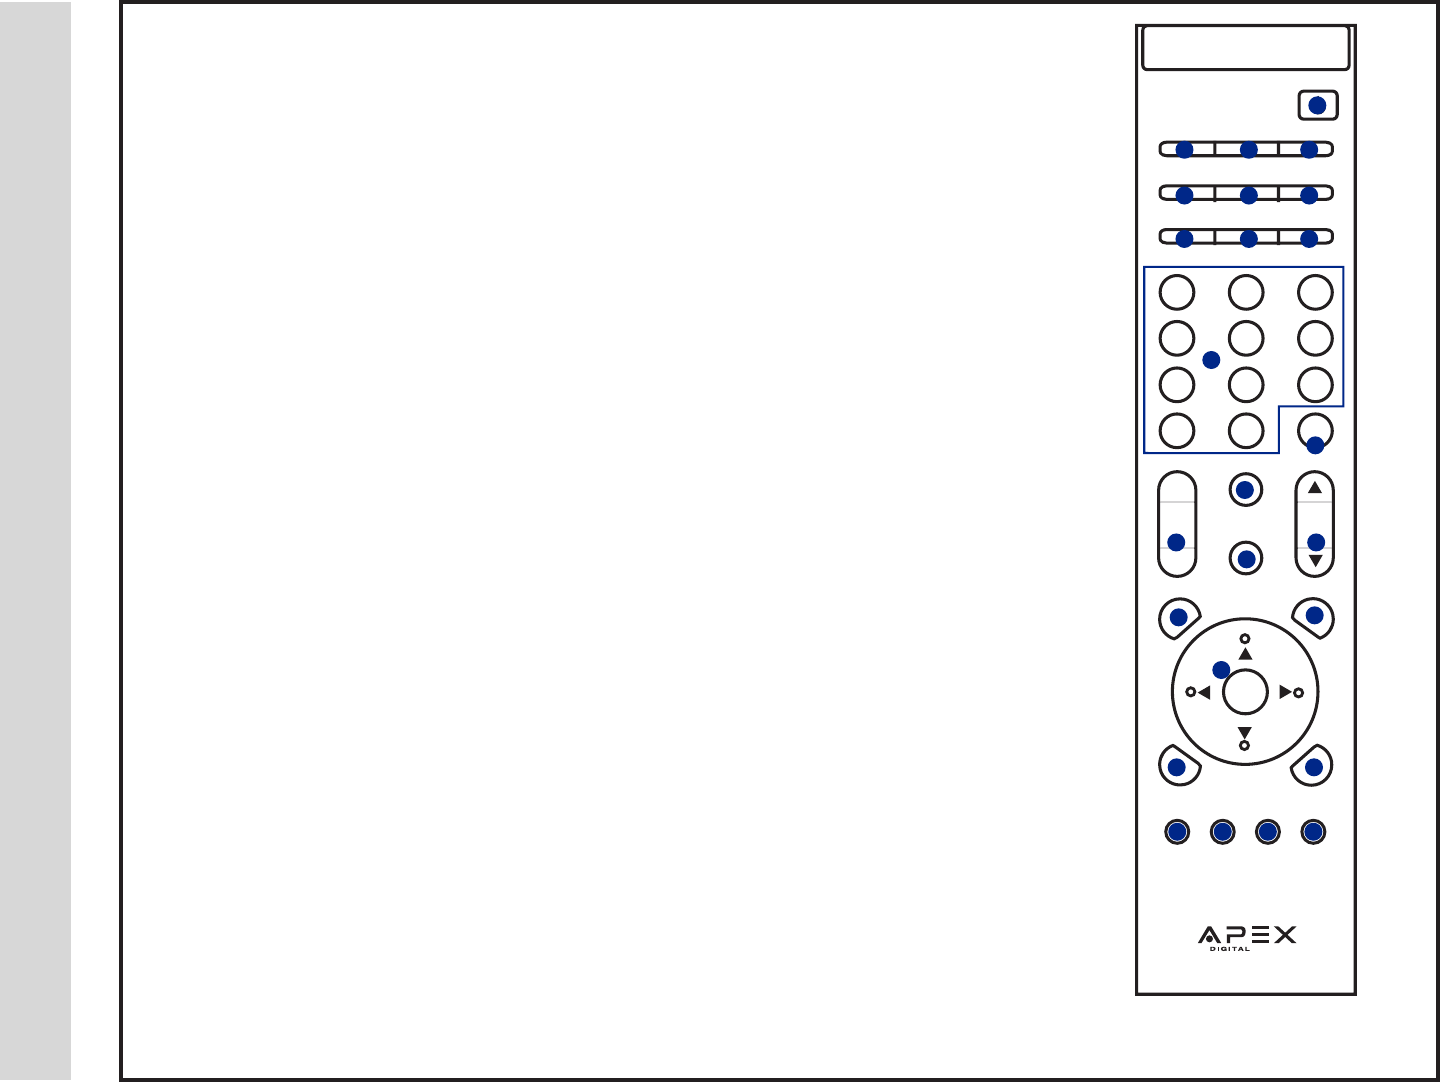 Page 8 of Apex Digital Flat Panel Television LD4088 User